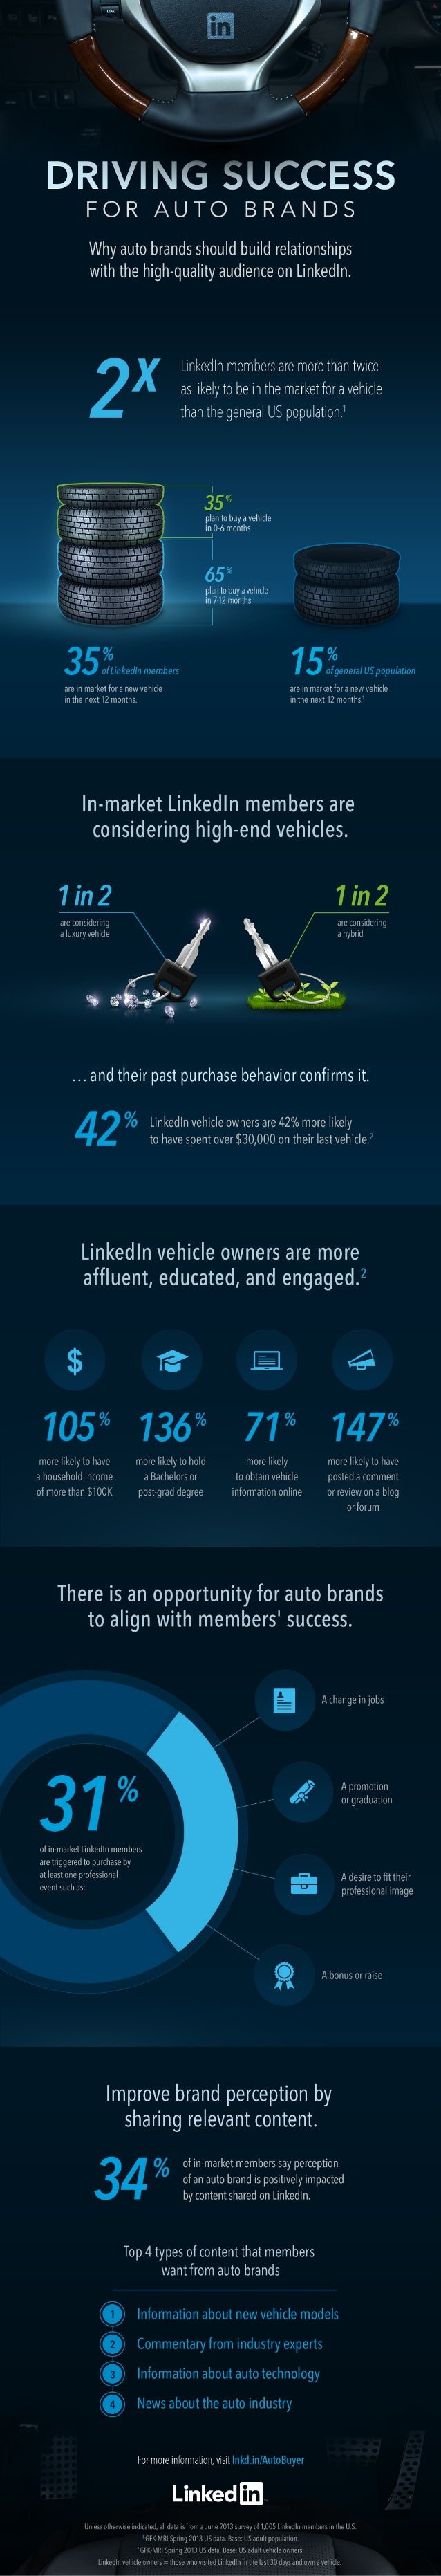 Driving Success for Auto Brands on LinkedIn [INFOGRAPHIC]